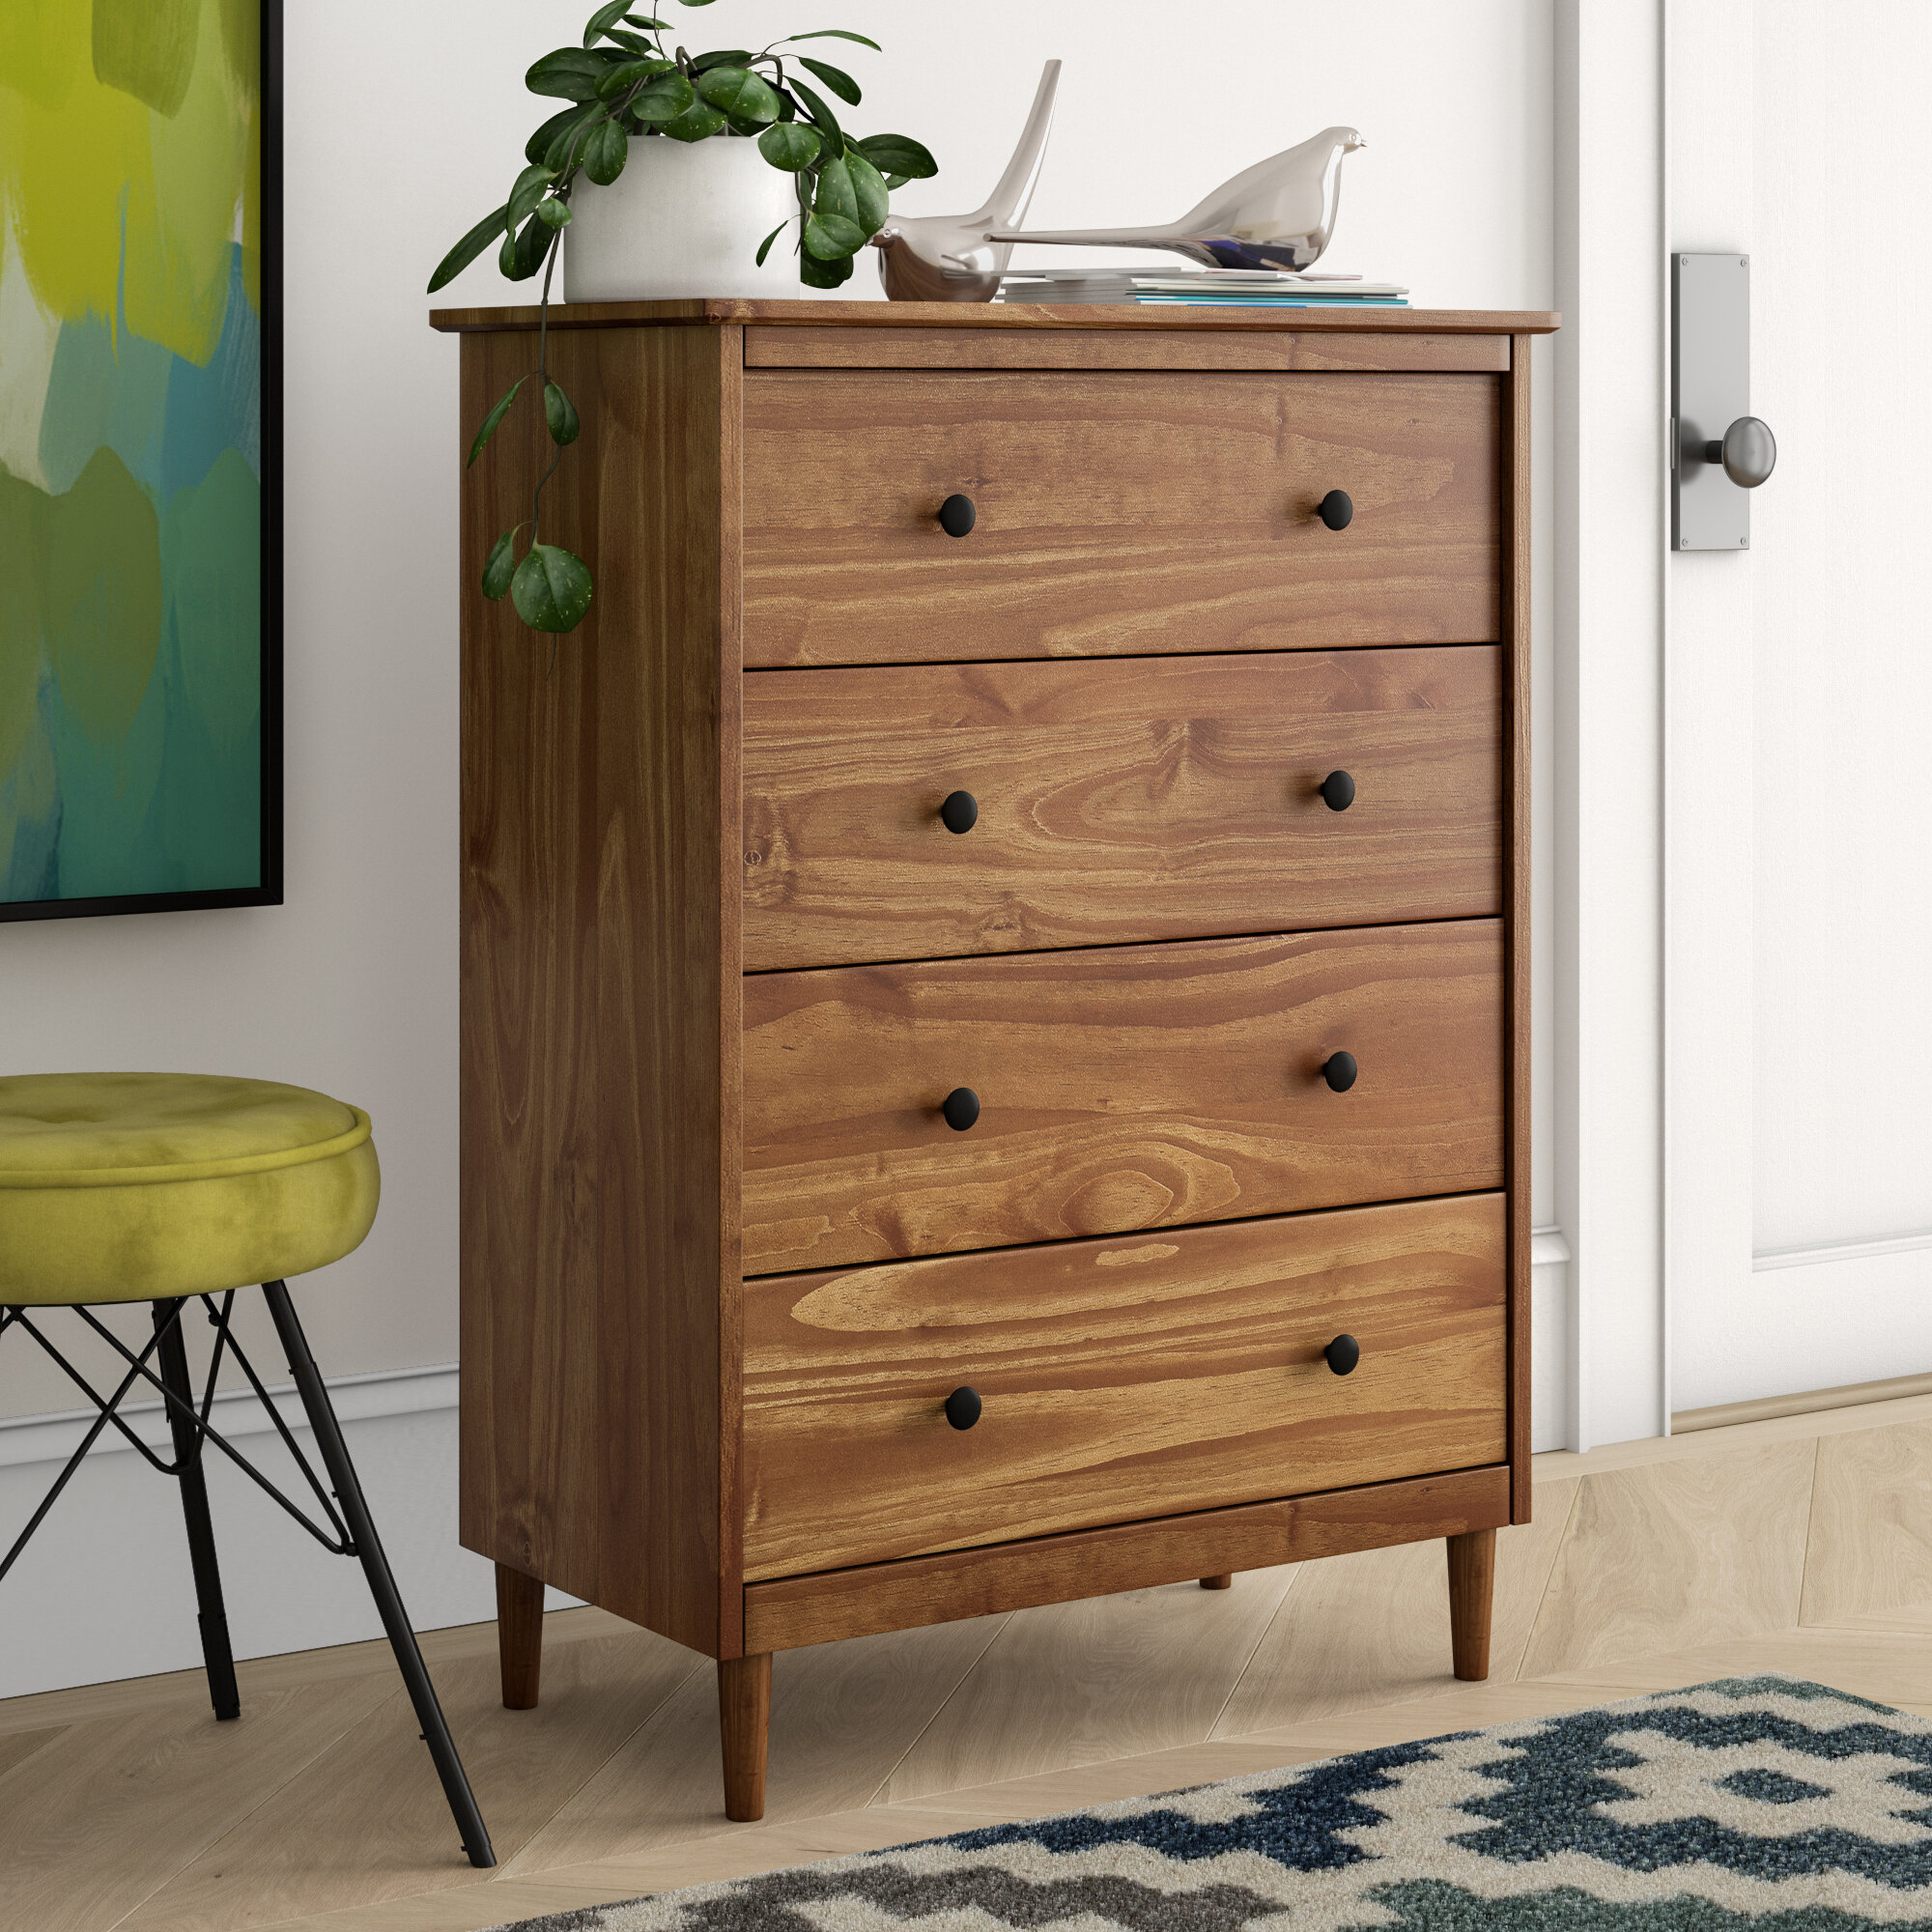 Solid Wood Tall Dressers Chests Free Shipping Over 35 Wayfair